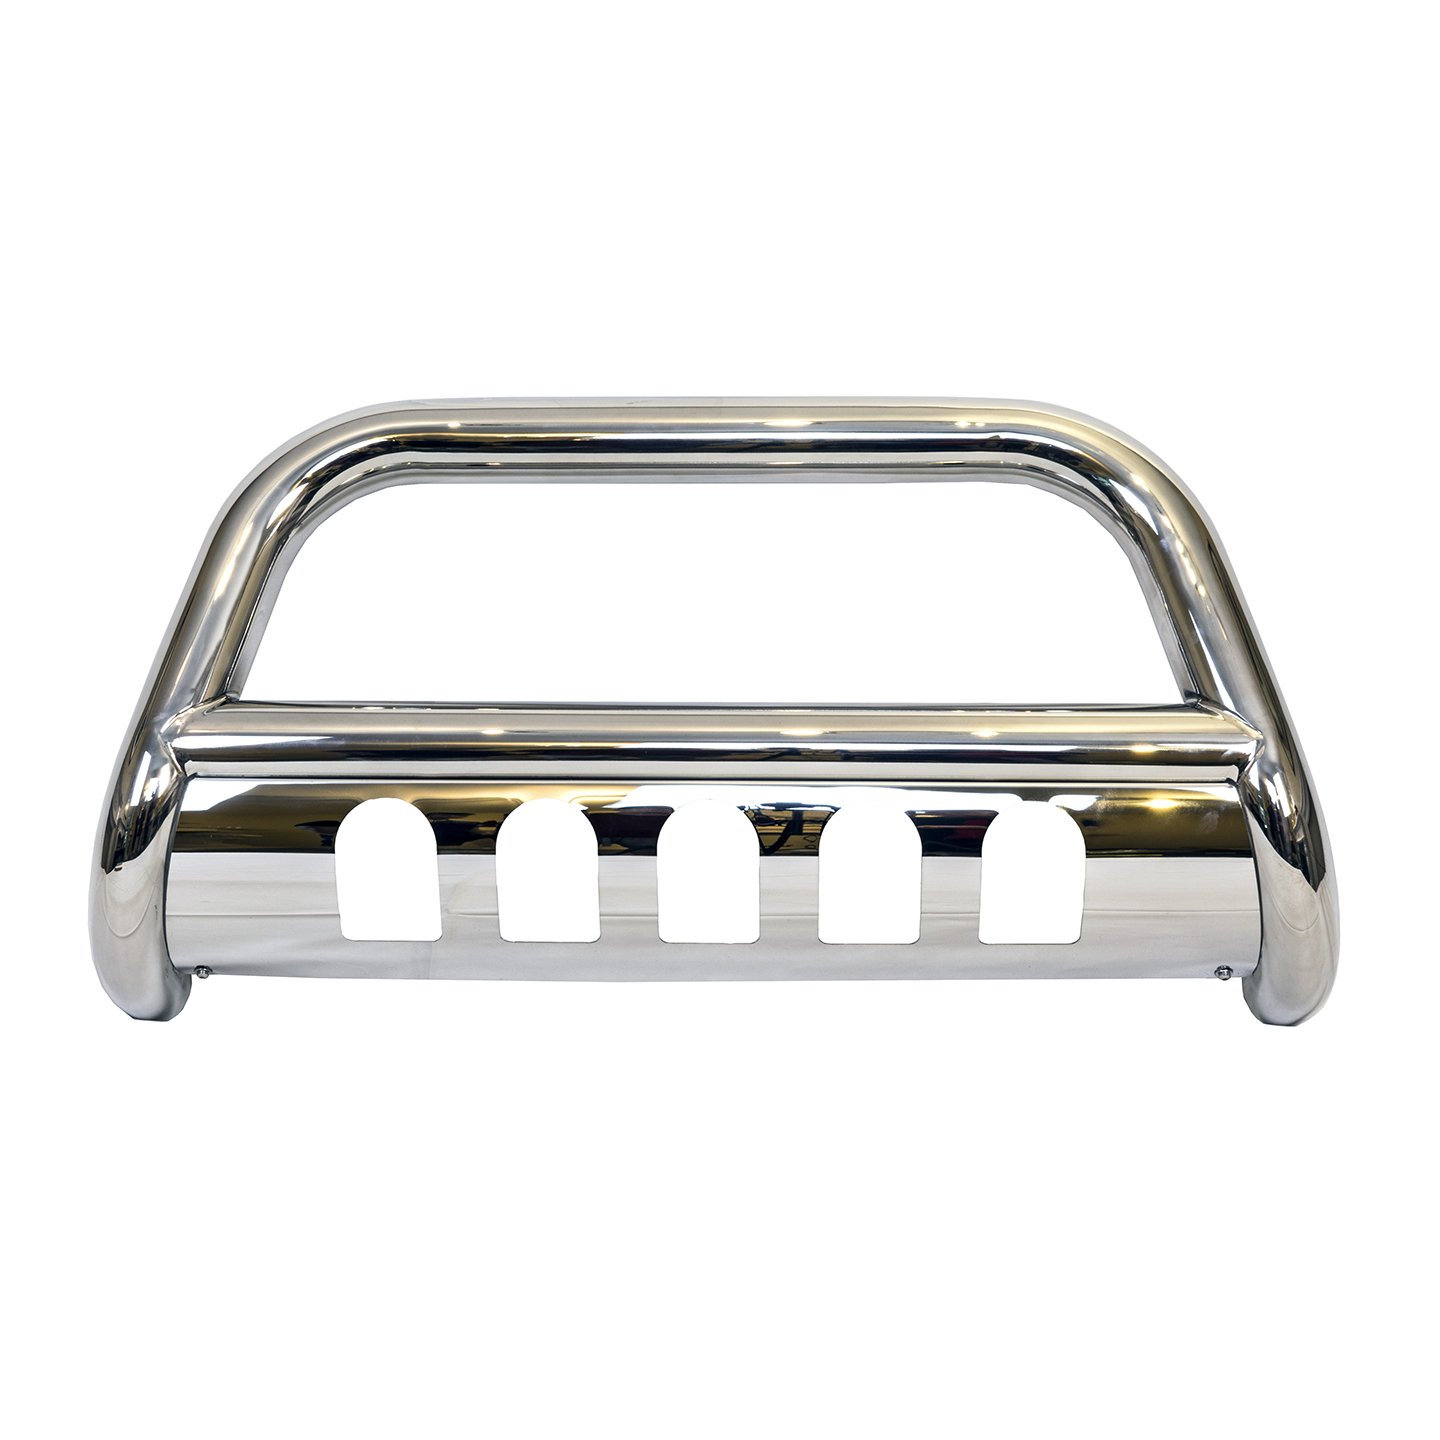 Galaxy Auto 3' Bull Bar for 2009-18 Dodge Ram 1500 (Excluding Rebel) - Stainless Steel Bumper Grille Guard (Chrome)